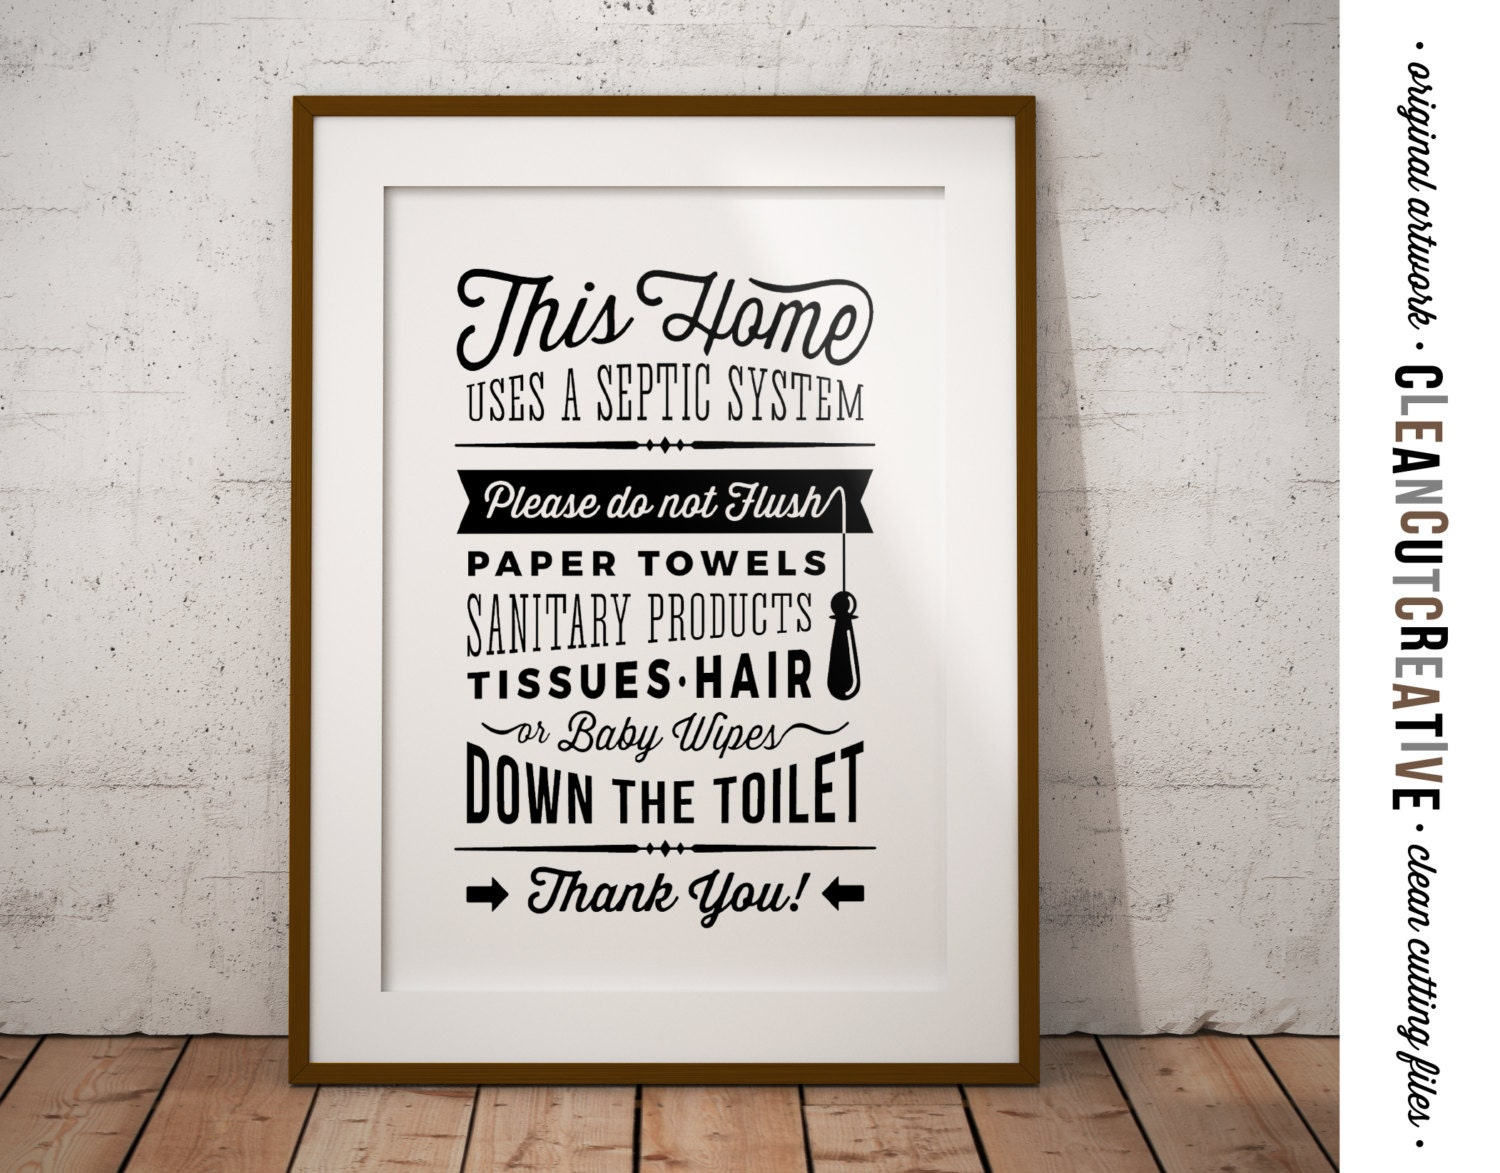 Printable bathroom sign - Bathroom Sign Septic System Do Not Flush Toilet Sign Pdf Jpg Png Jpeg Printable Digital Artwork Retro Vintage Sign Instant Download